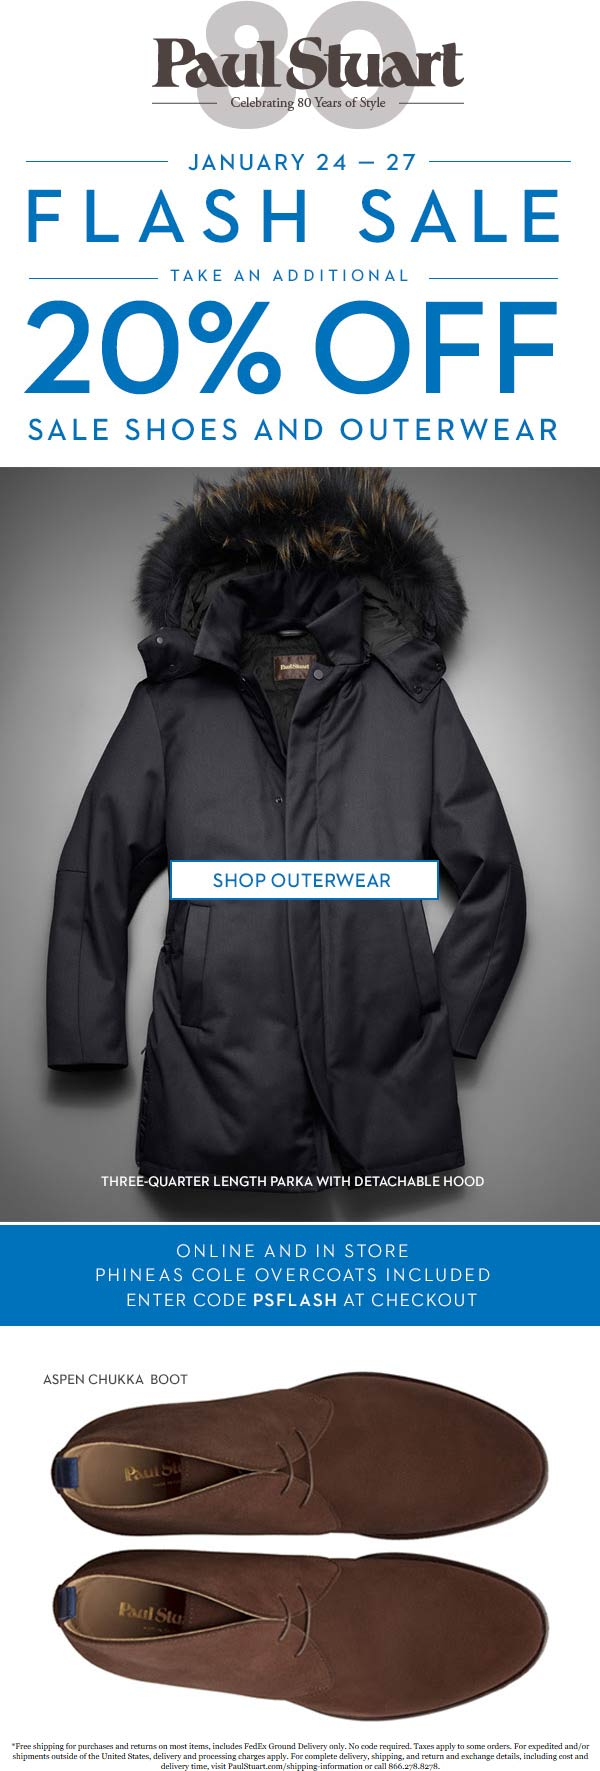 Paul Stuart Coupon November 2019 20% off outerwear at Paul Stuart, ditto online